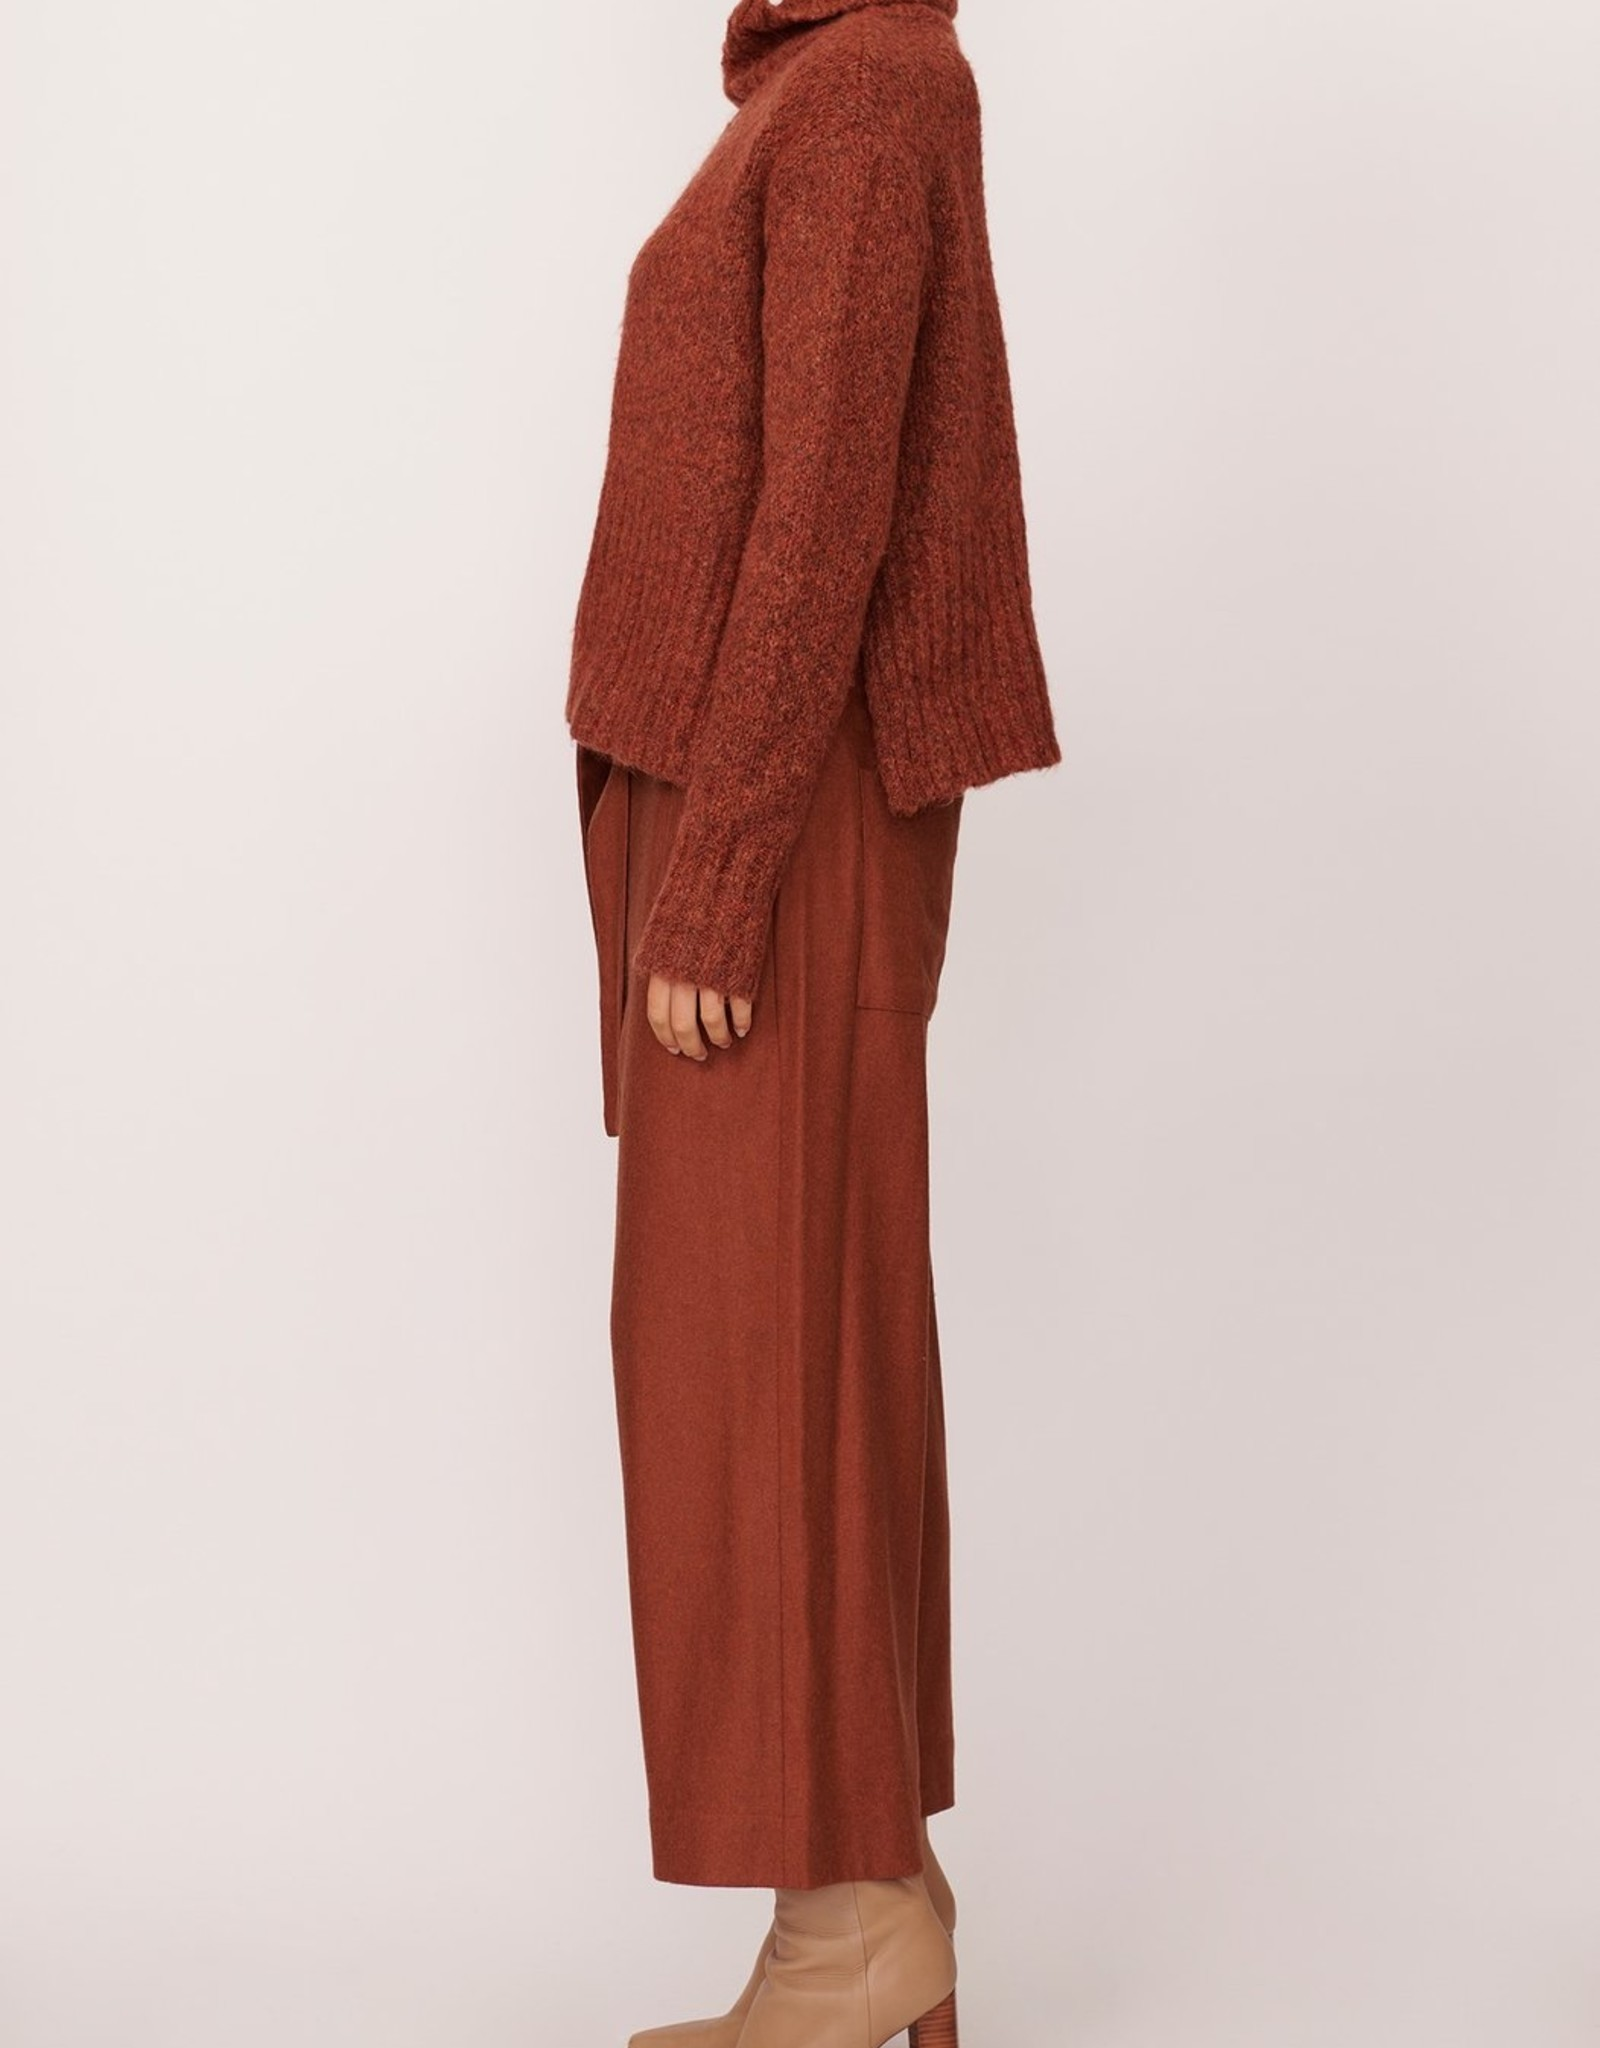 SALE - POL ASPEN TURTLENECK KNIT RUST